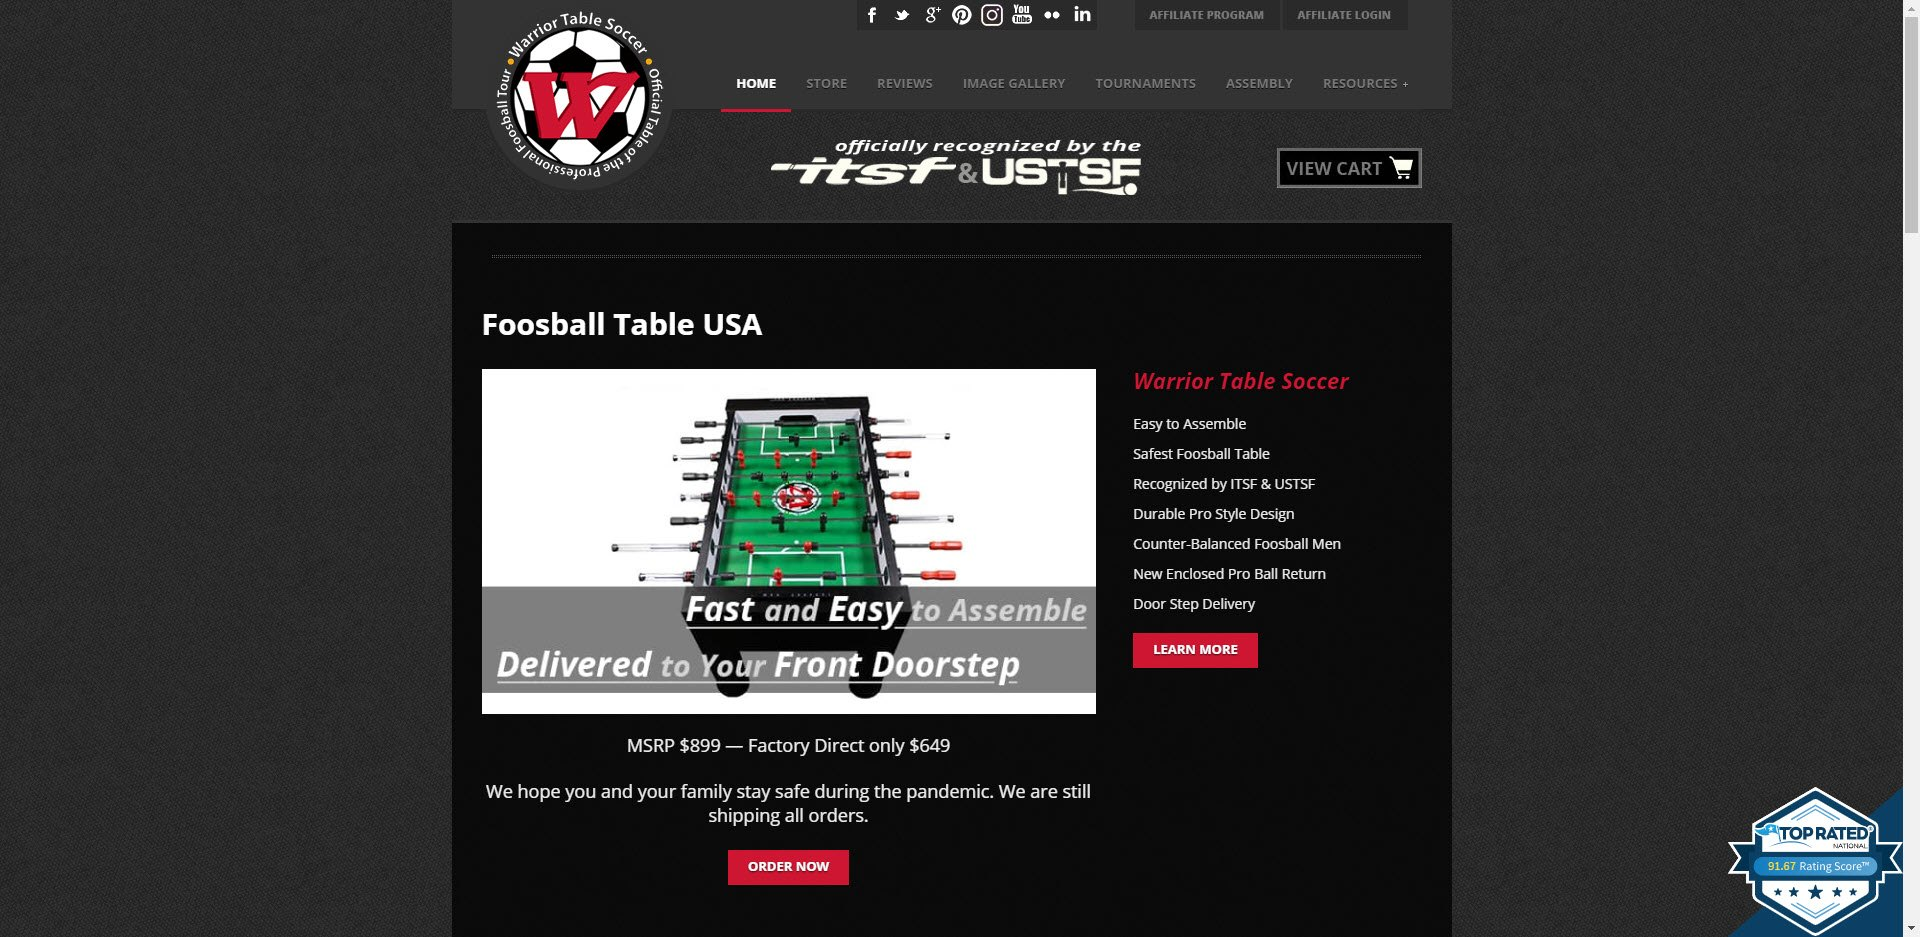 Man Cave Affiliate Programs - Warrior Table Soccer